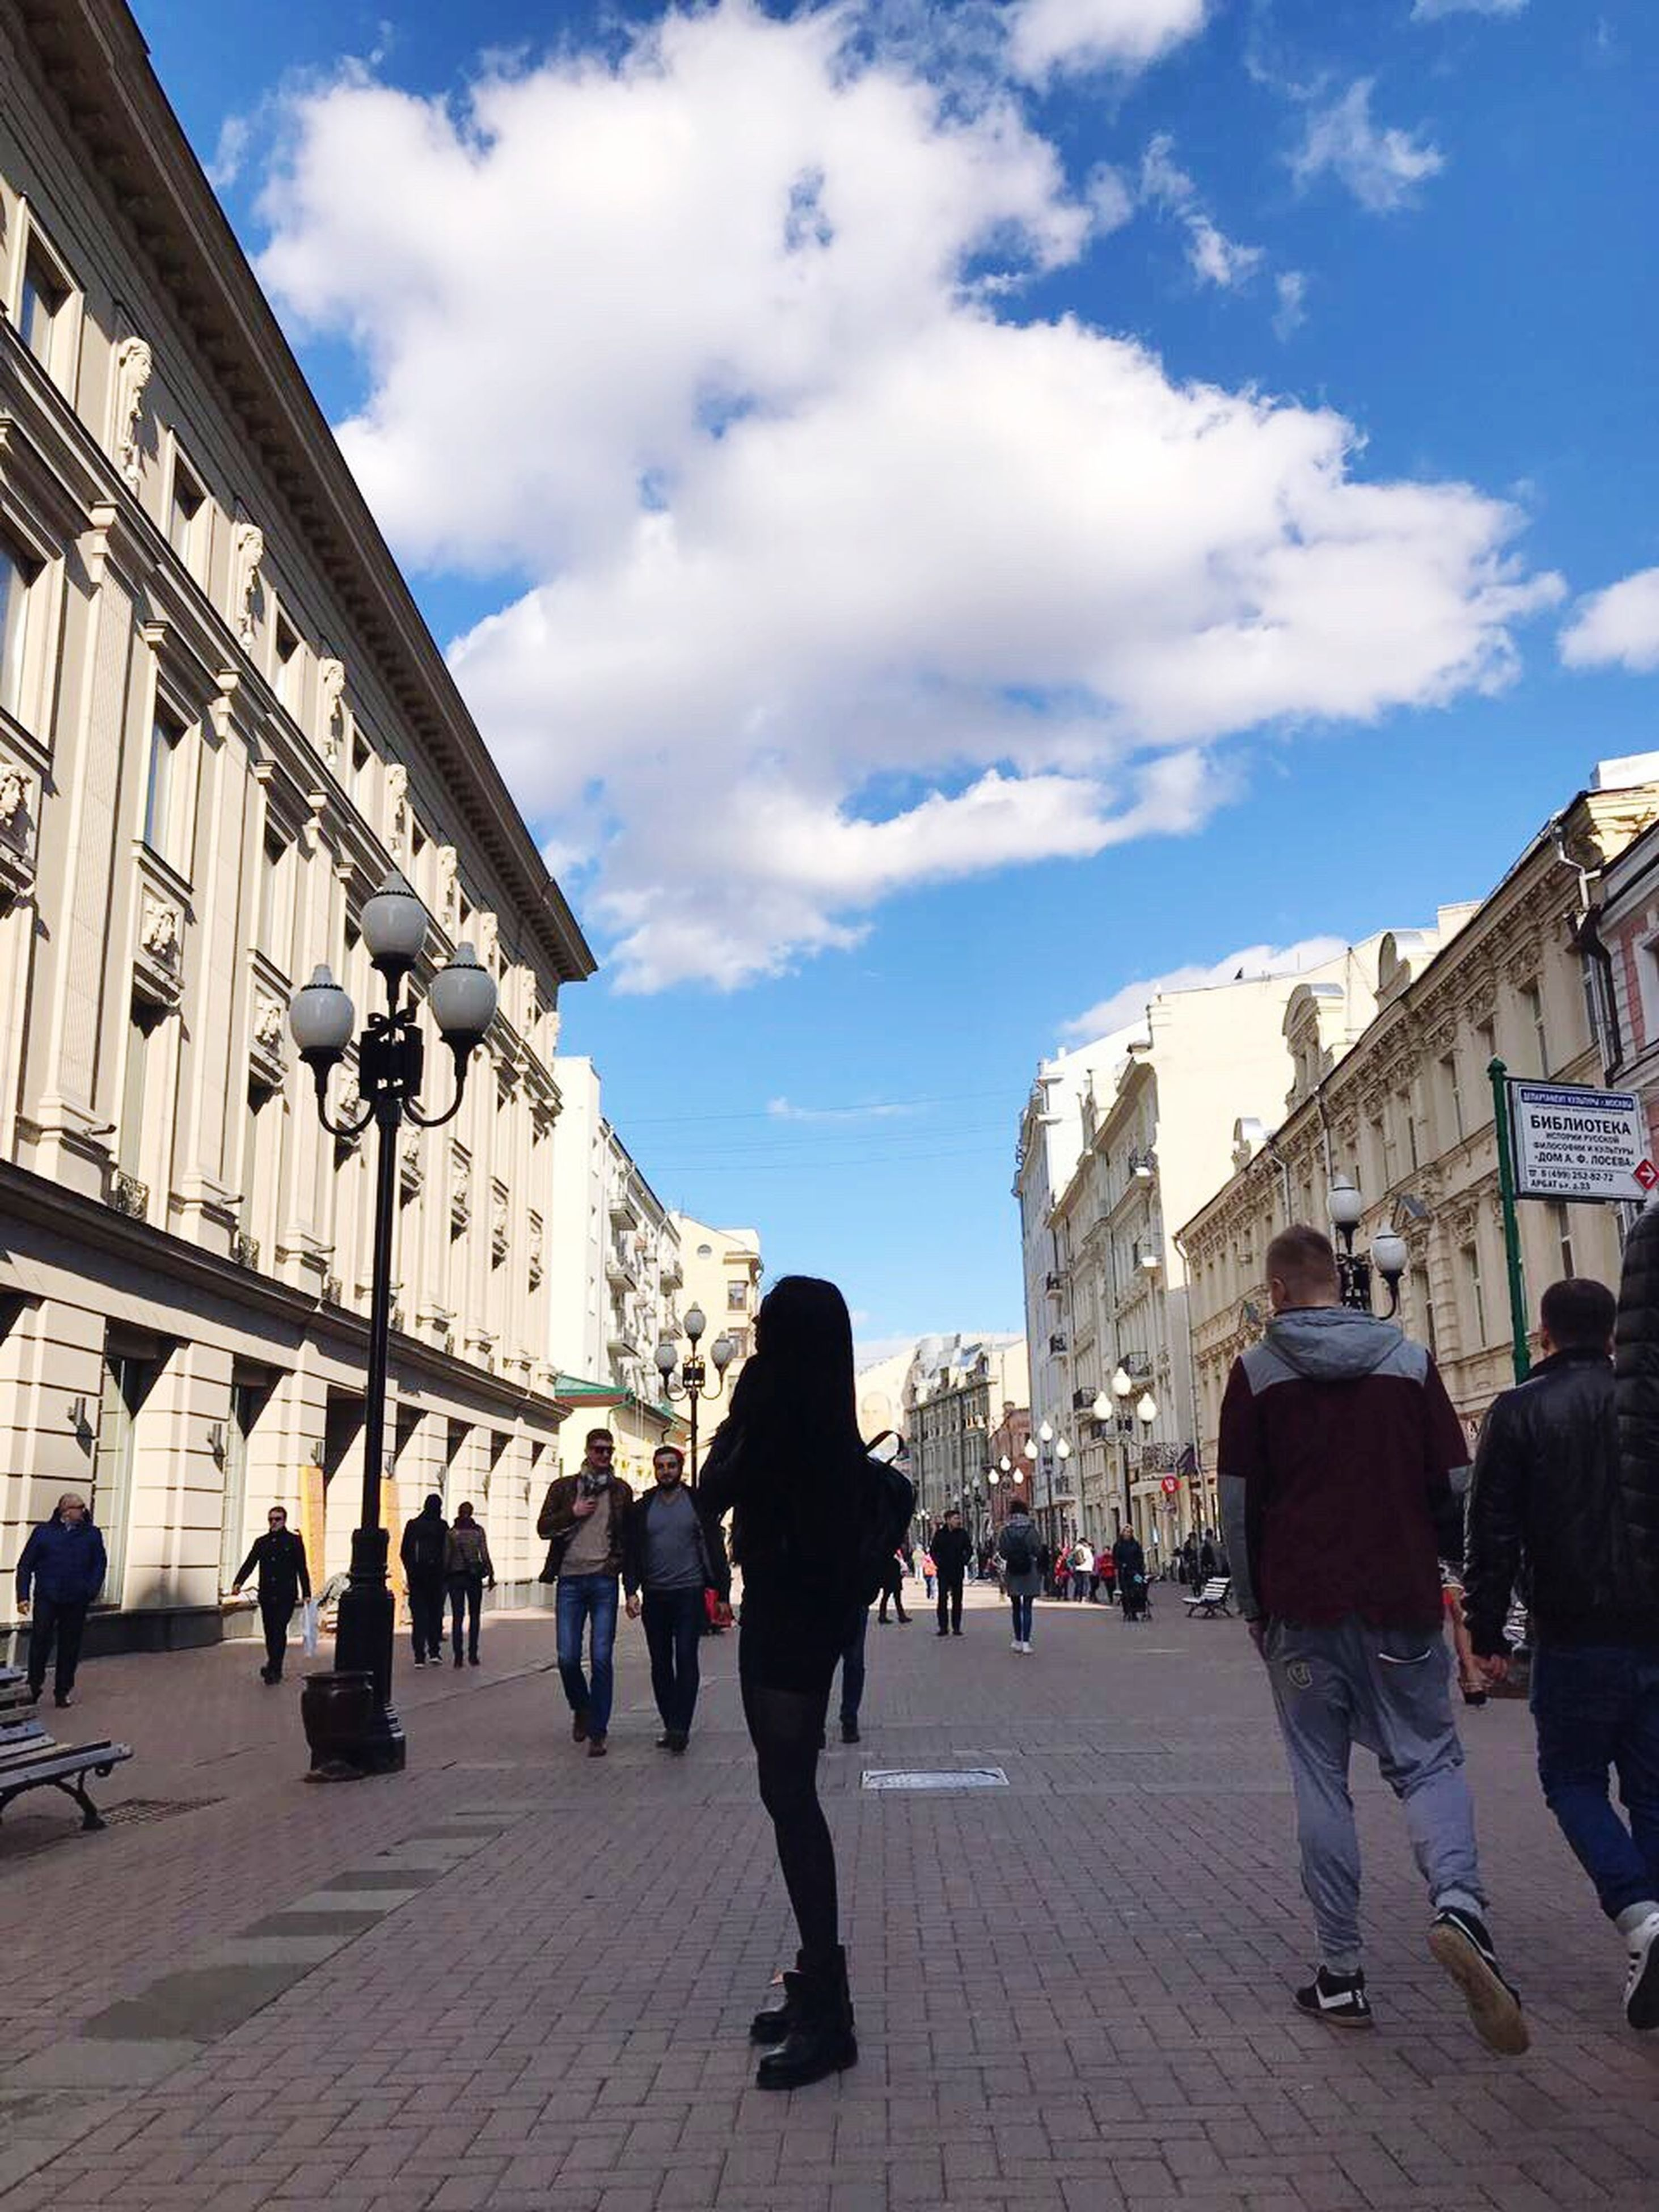 large group of people, walking, city, sky, cloud - sky, architecture, people, day, adults only, outdoors, adult